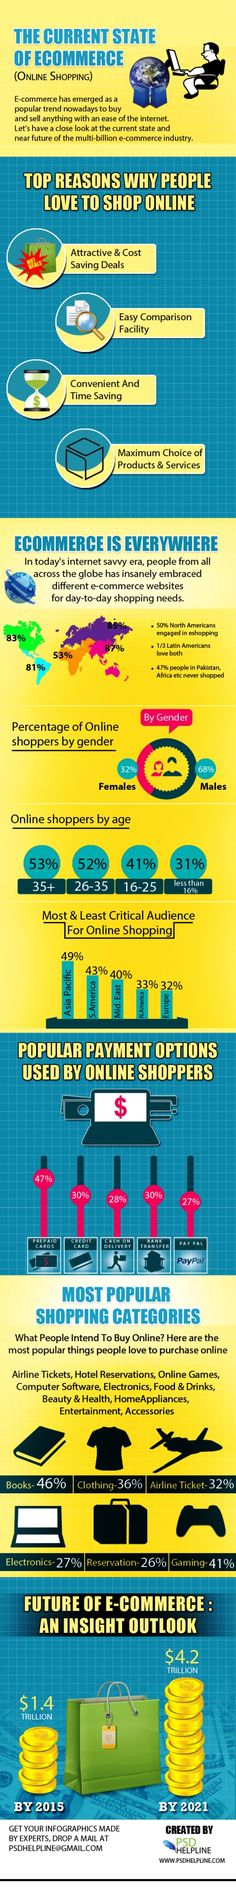 The Current State of eCommerce [infographic] Once you get past the first bit, some lovely stats Marketing Automation, Email Marketing, Digital Marketing, Change Day, Infographics, Ecommerce, Insight, Web Design, Stress